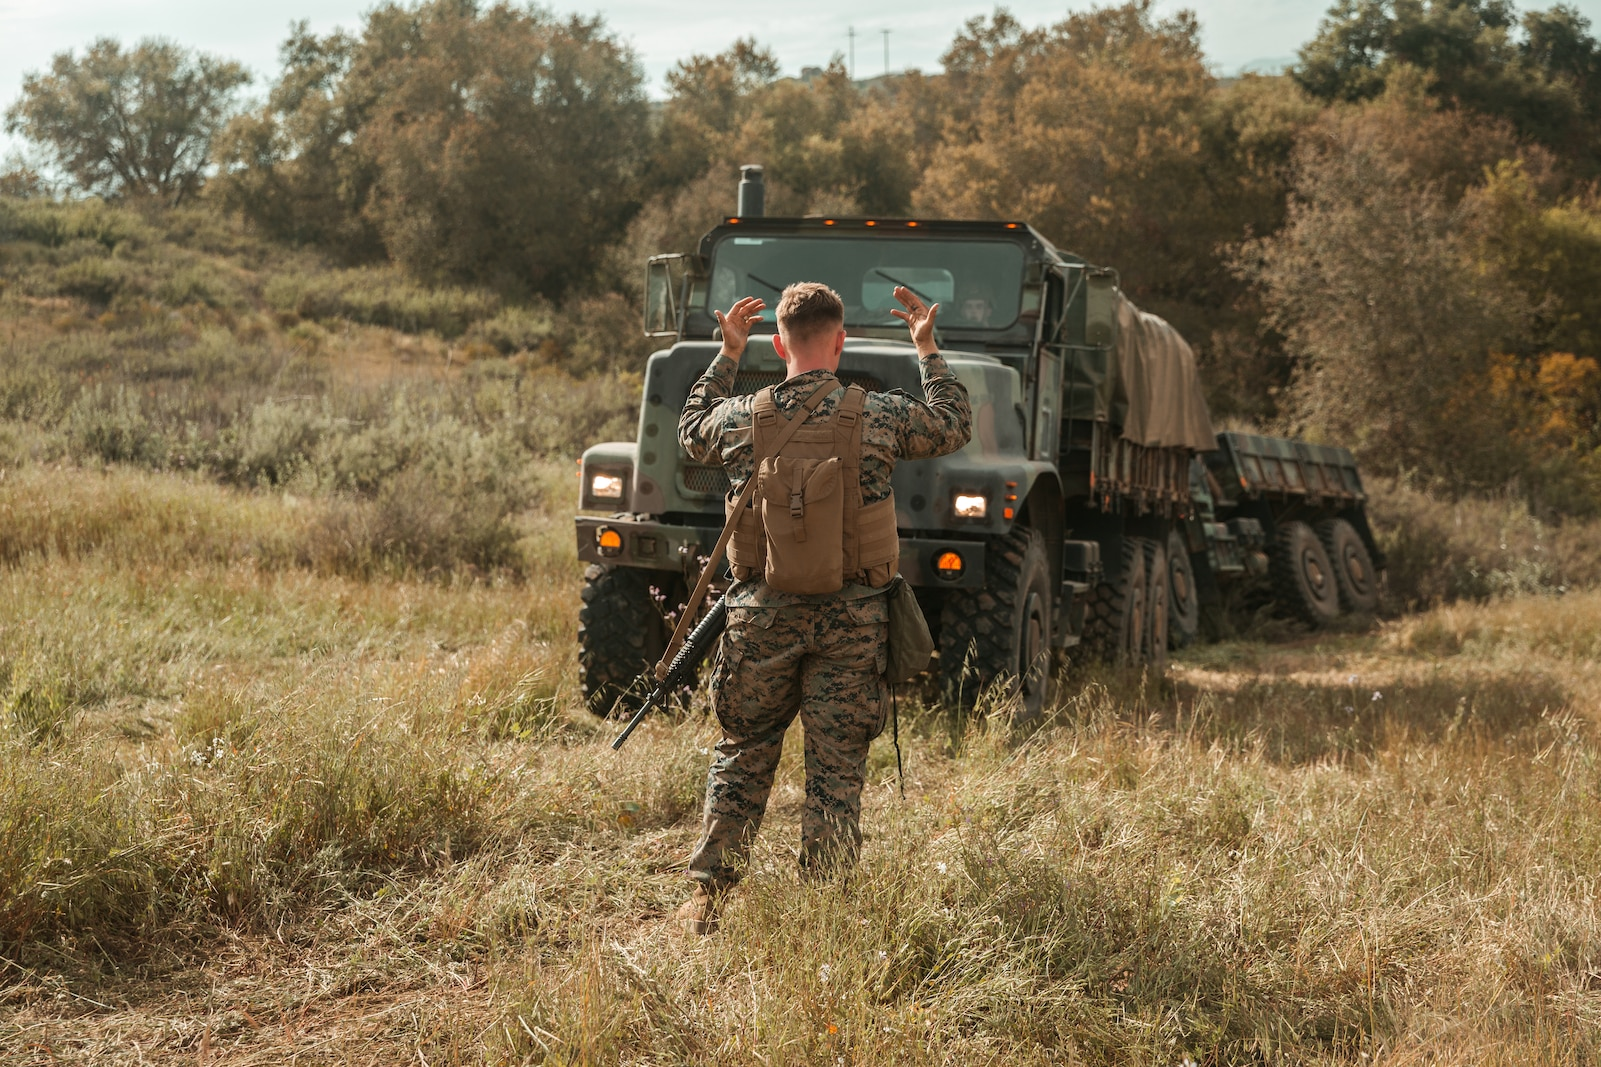 CLR-17 conducts vehicle recovery drills on Camp Pendleton.